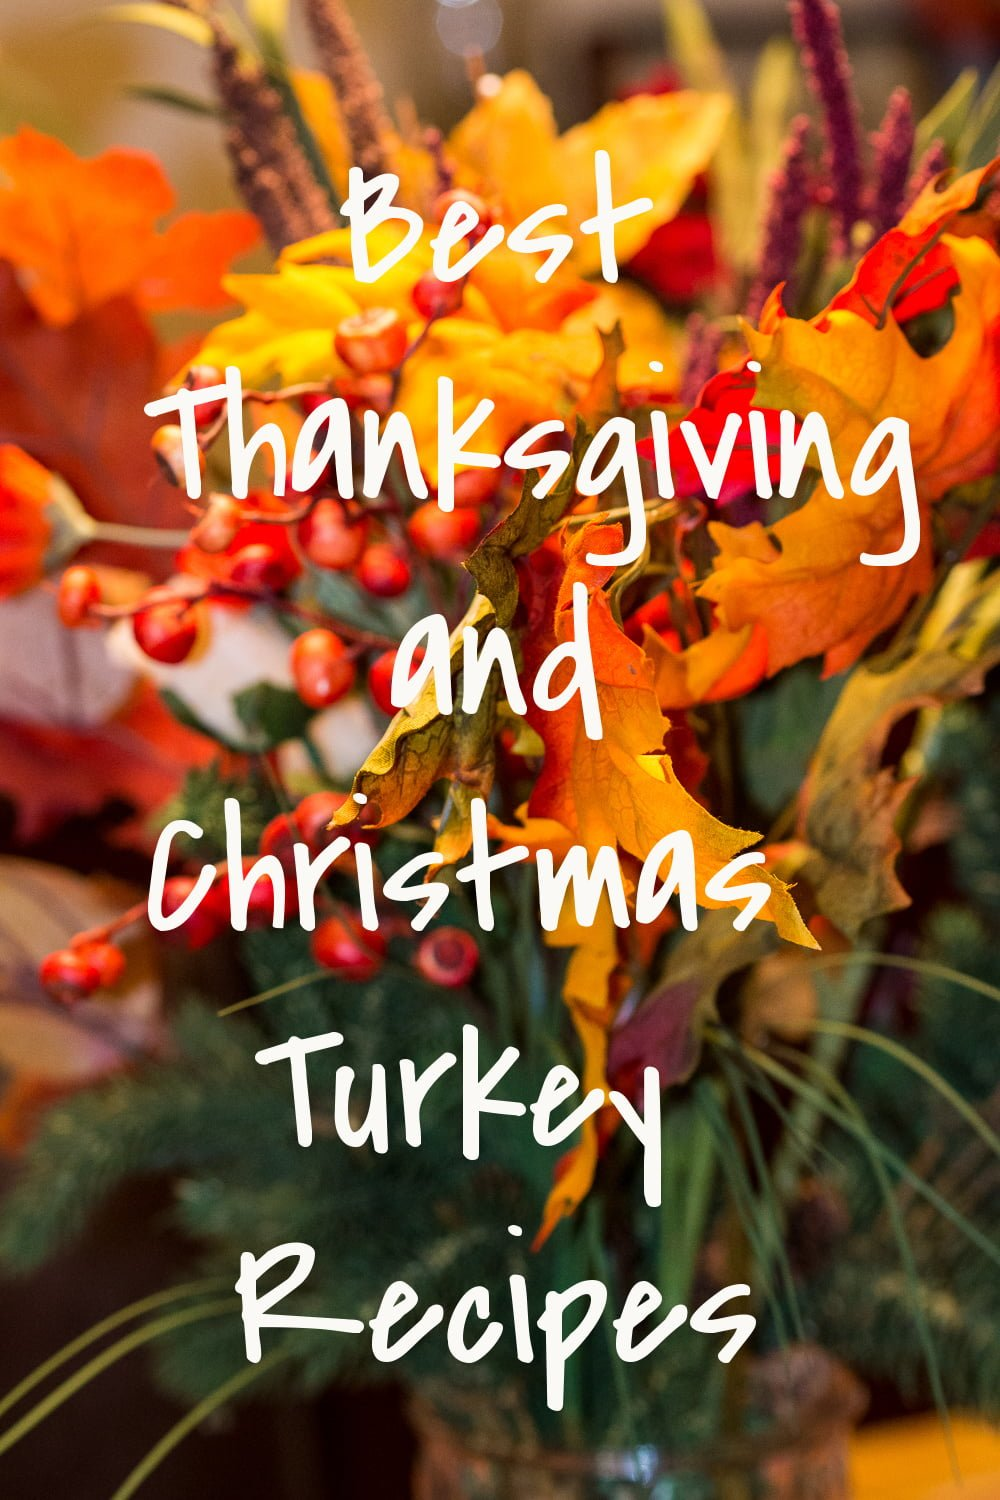 Best Thanksgiving And Christmas Turkey Recipes2